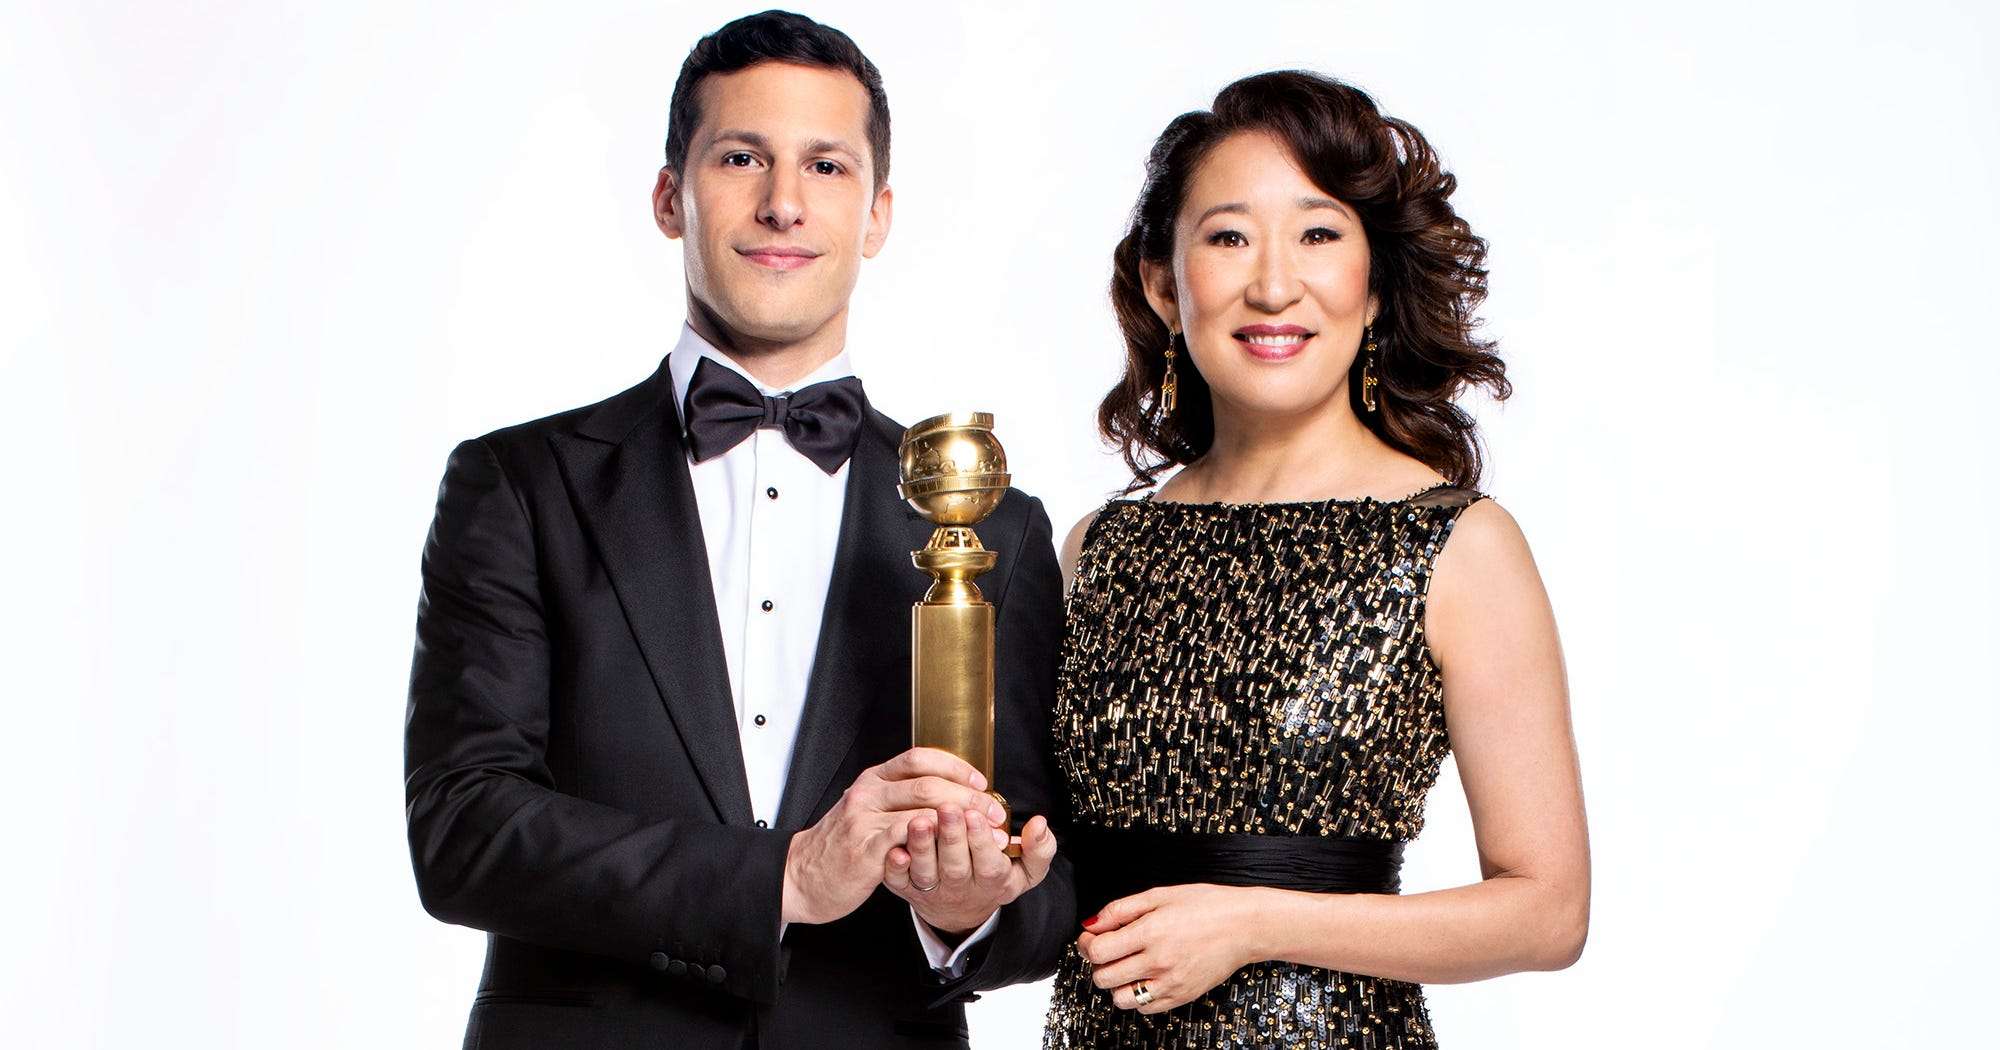 How To Watch Or Stream Golden Globes Amp Red Carpet 2019